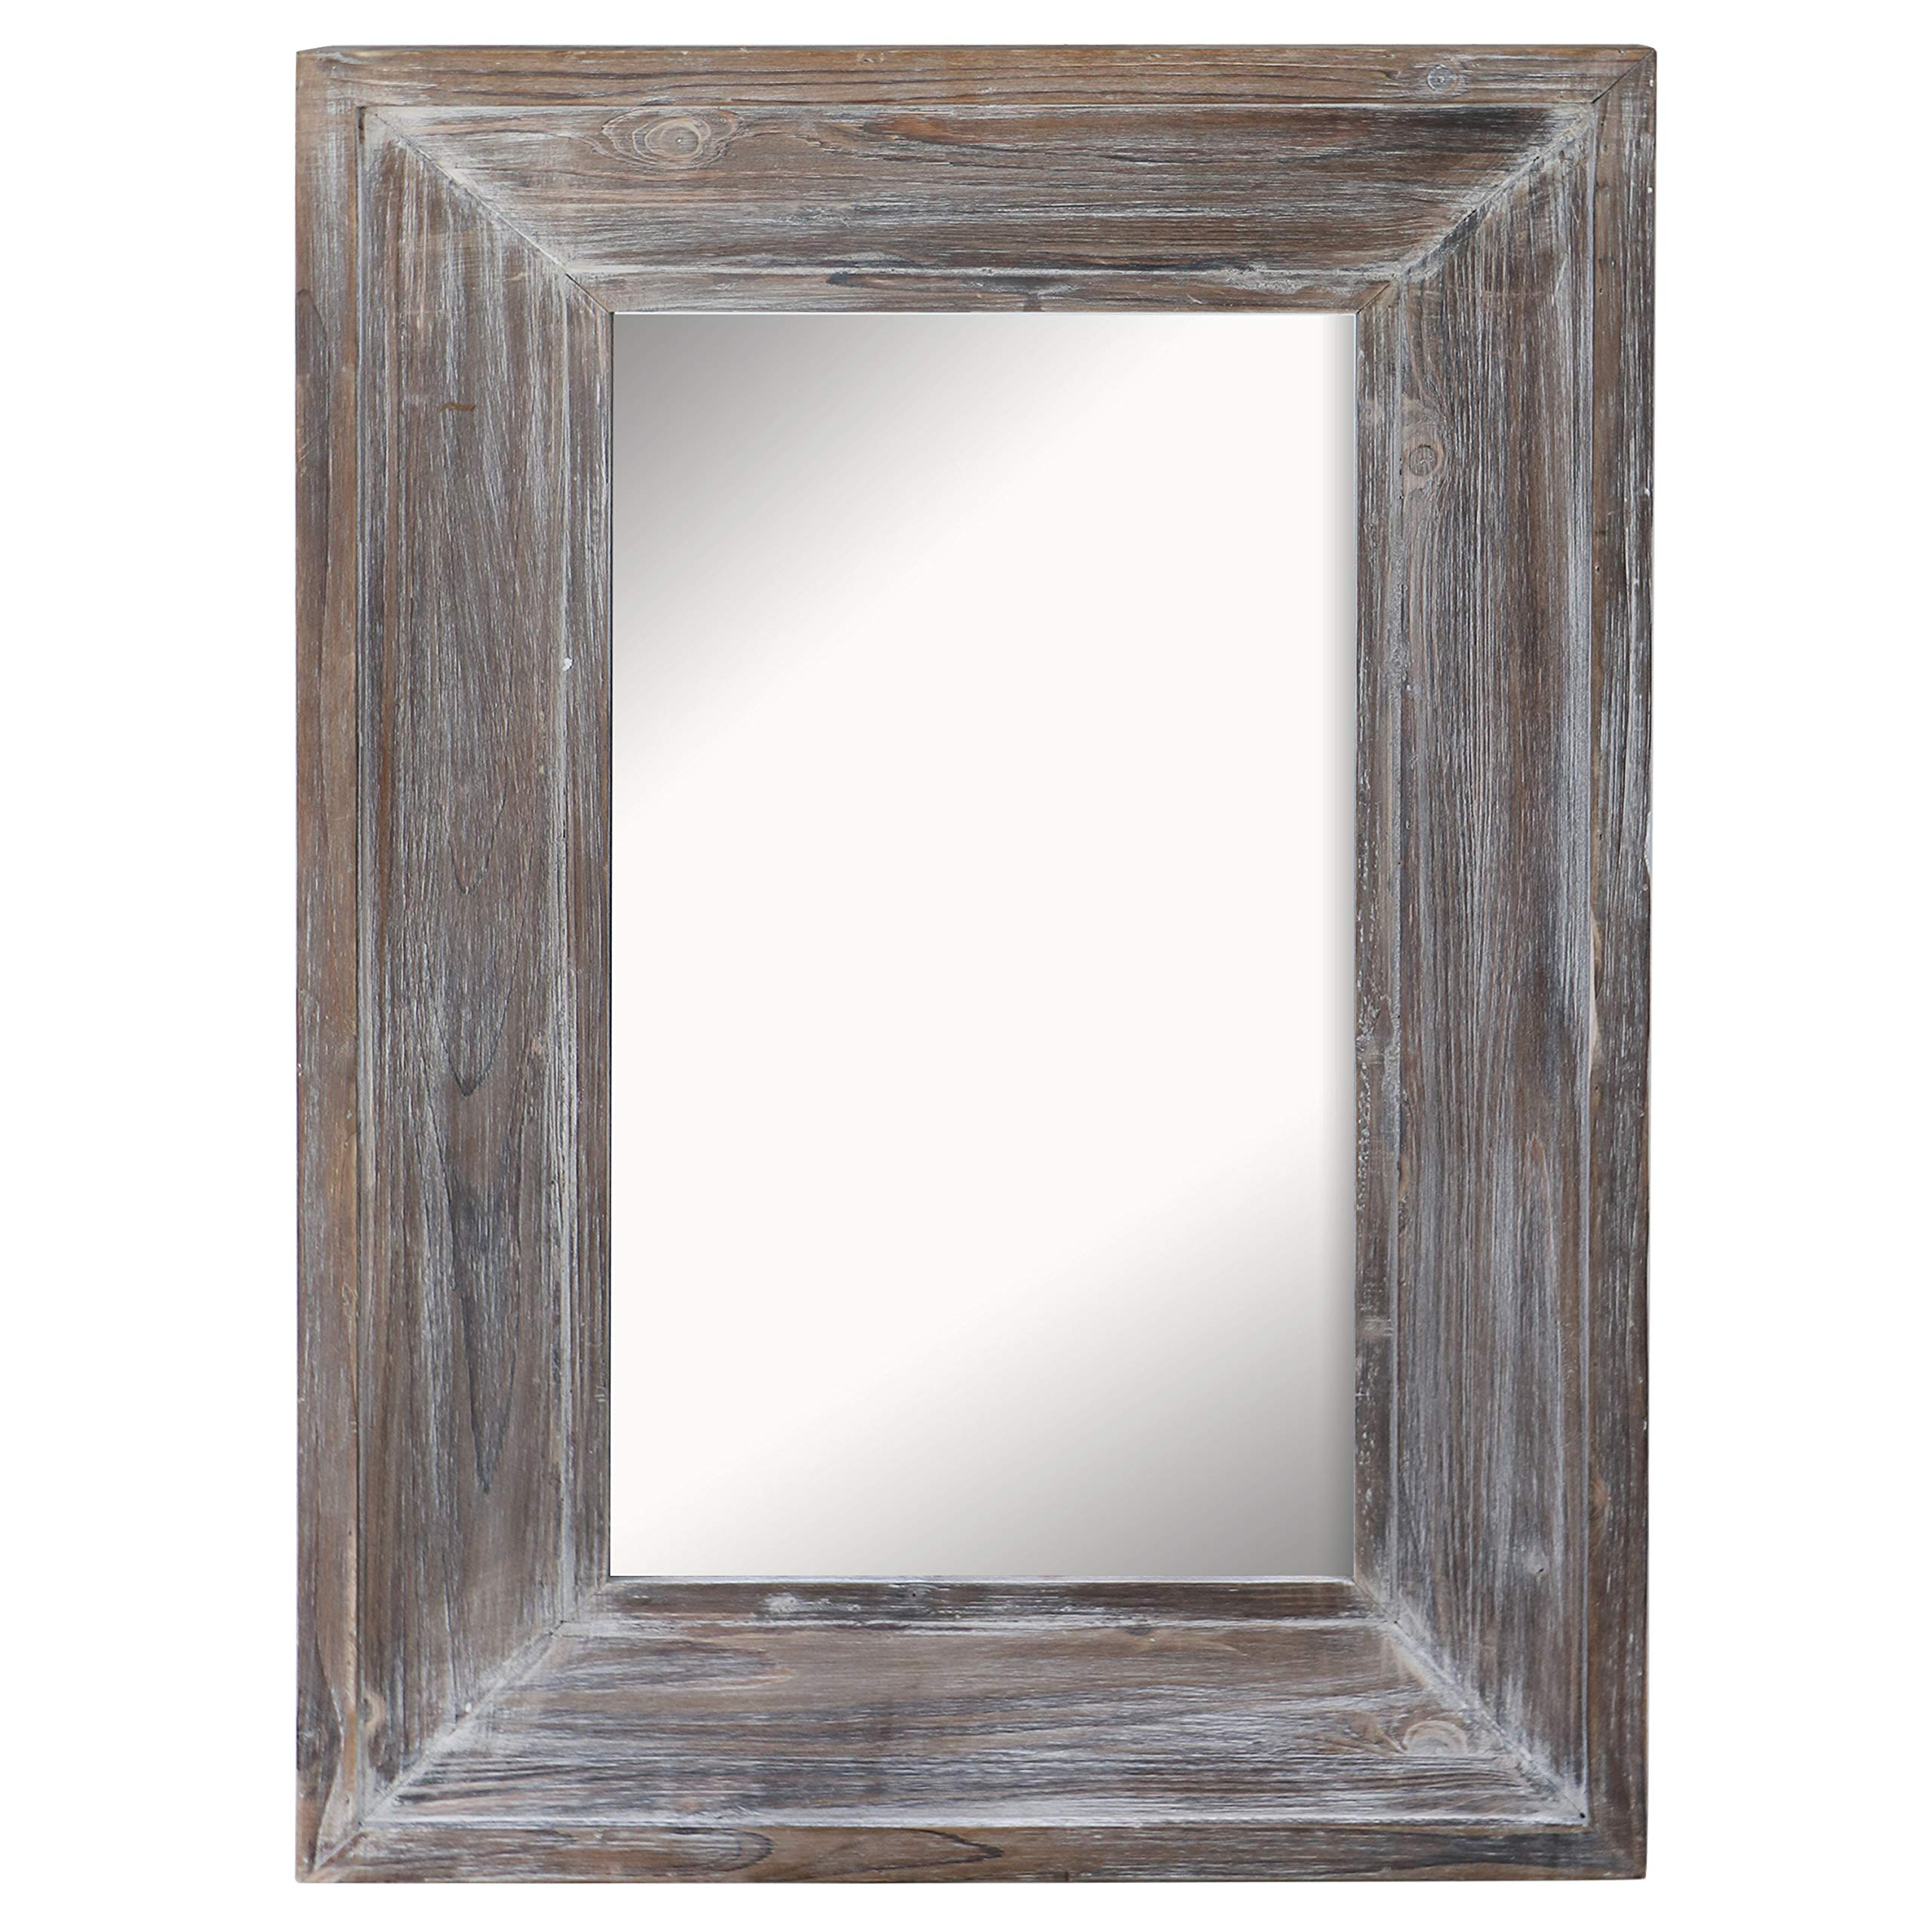 Barnyard Designs Decorative Wall Mirror Rustic Distressed Natural Wood Frame Vertical Hanging Mirror Wall Decor 36'' x 24''